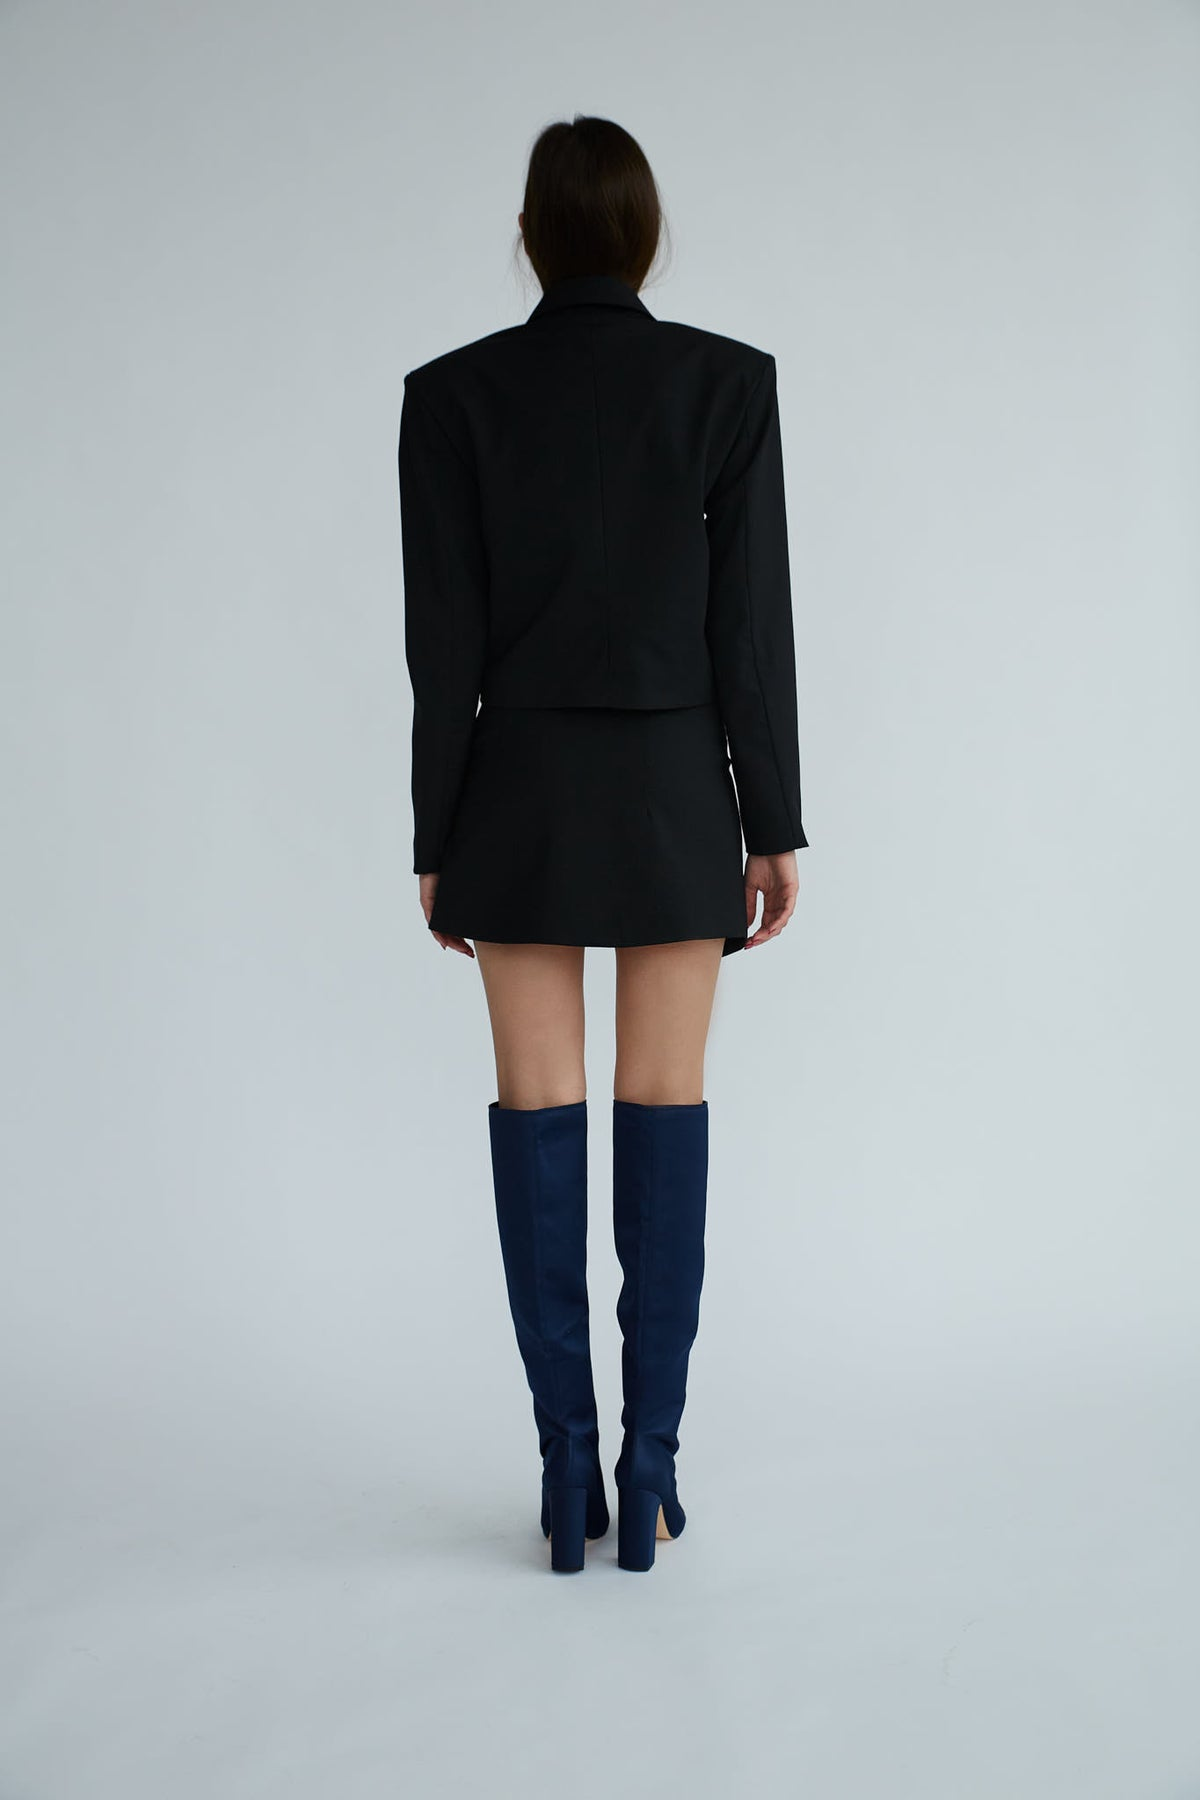 Empowered-Black-Triangle-Tailoring-Short-Skirt-Clothing-le-slap.jpg